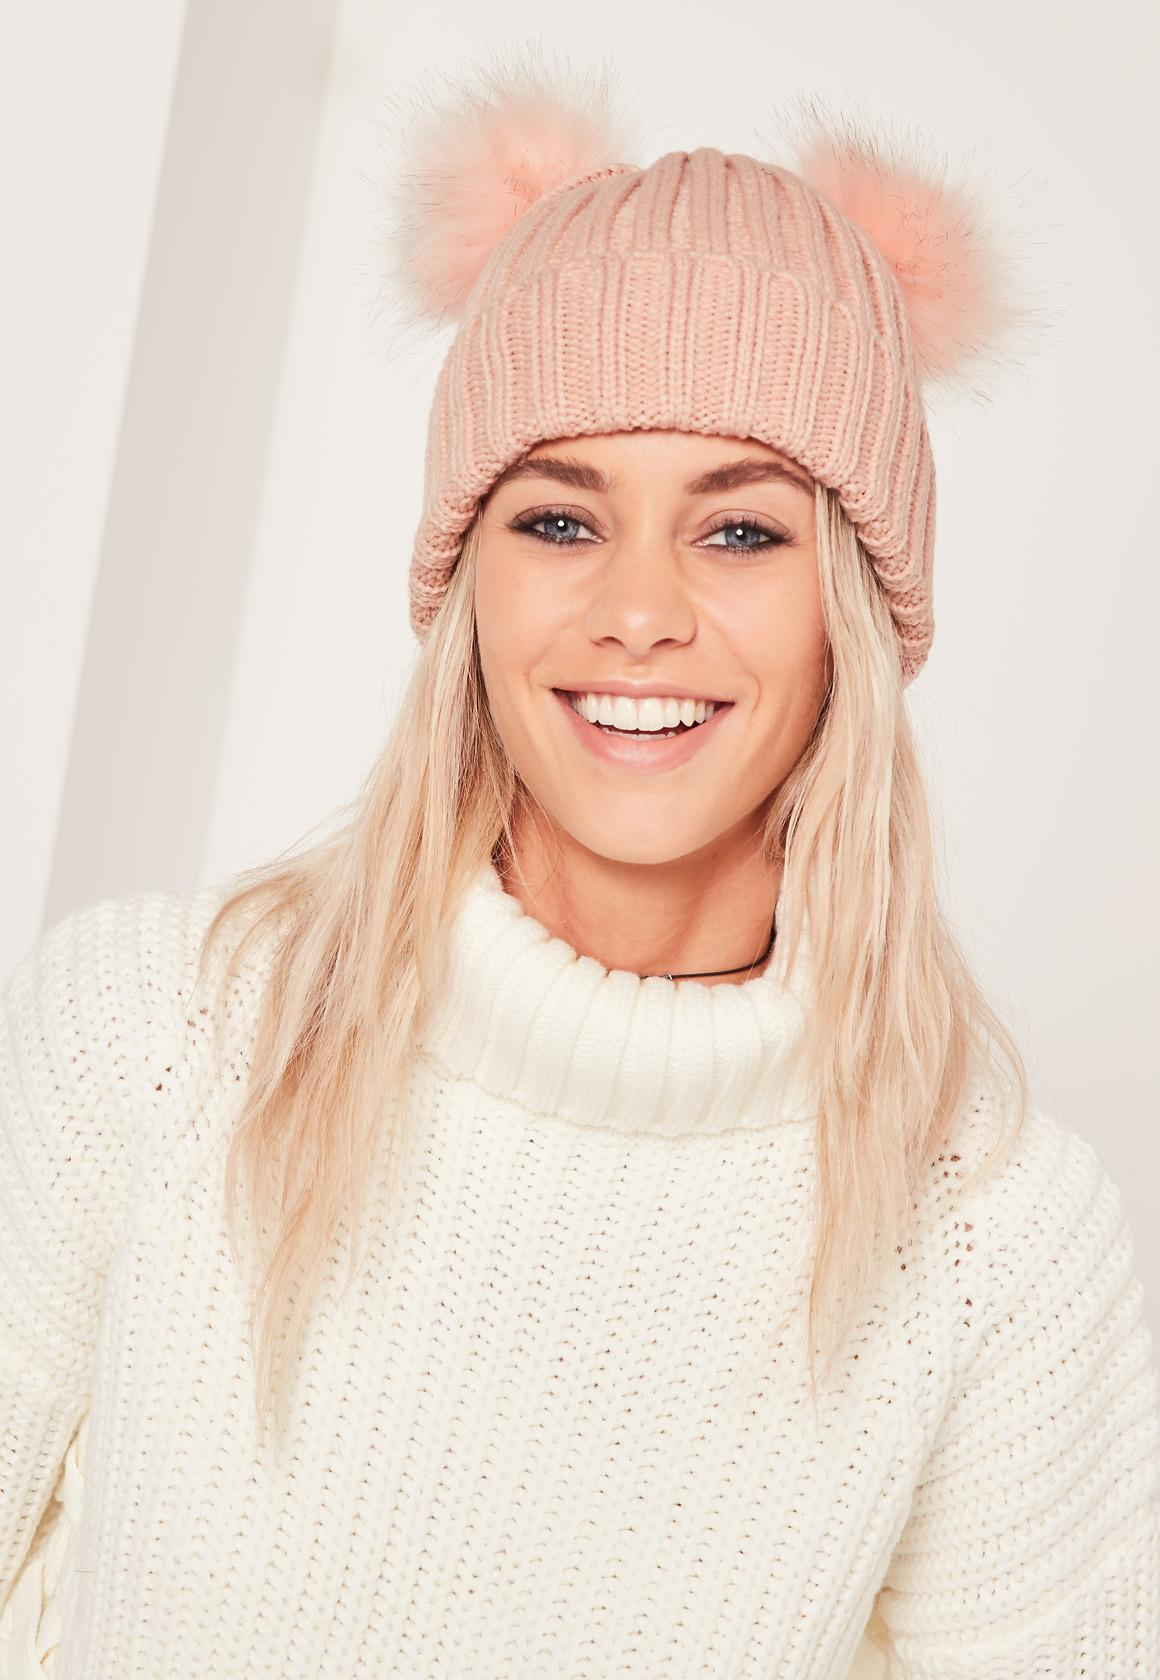 Lyst - Missguided Double Pom Beanie Hat Pink in Pink 093bc0235674